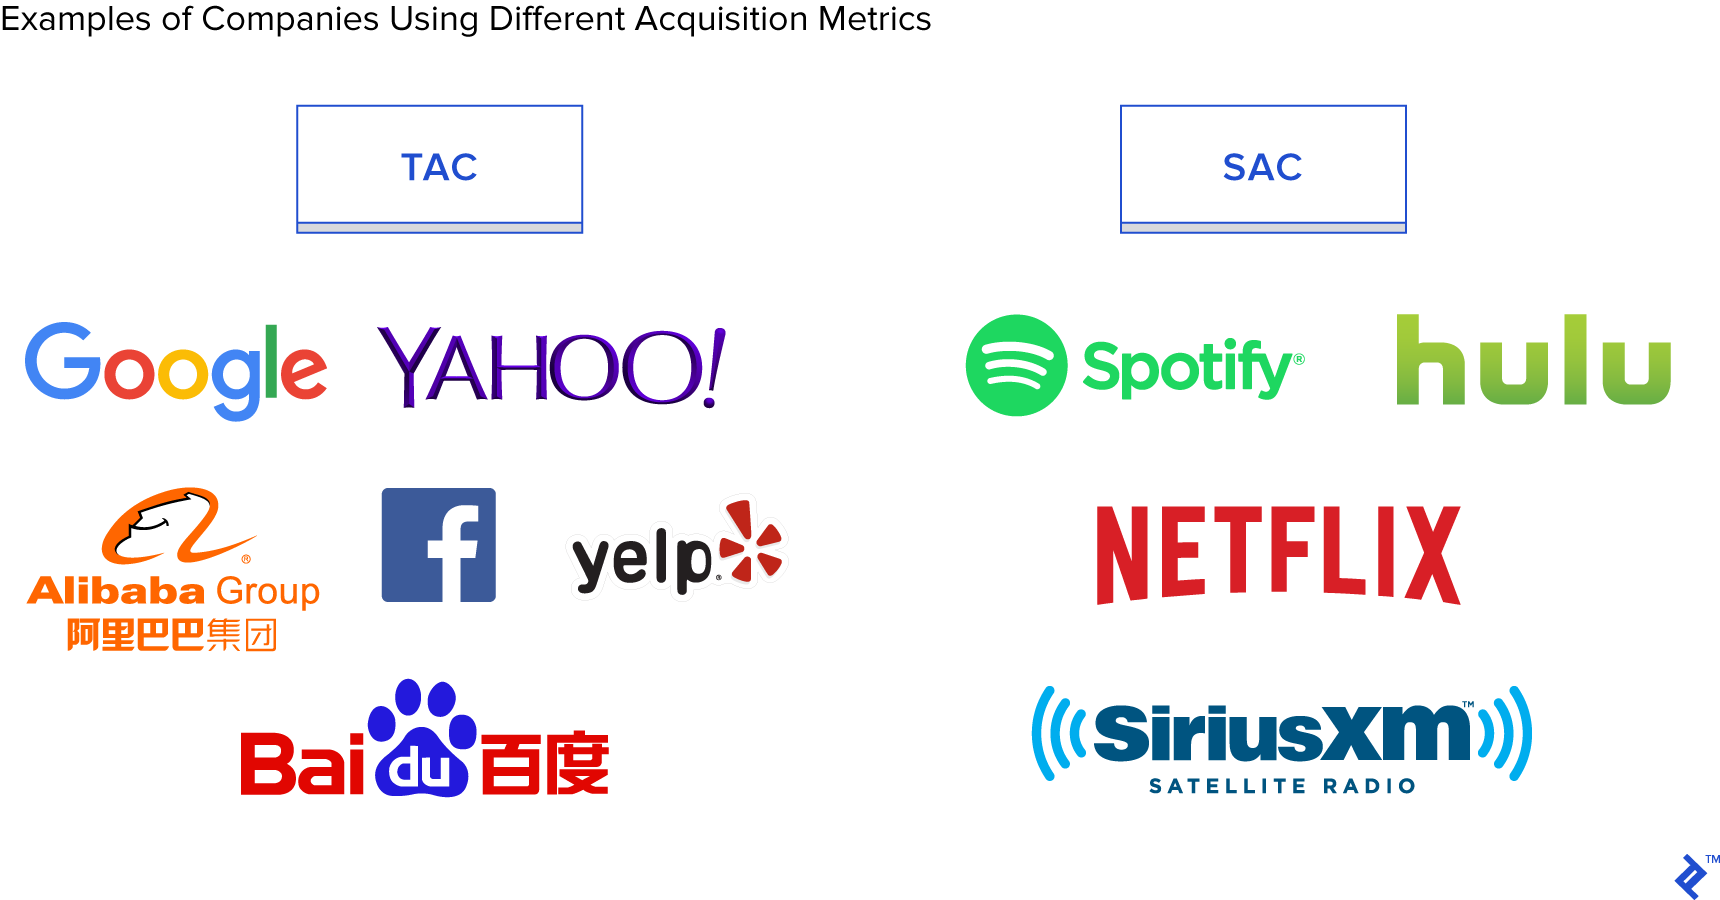 Examples of companies using different acquisition metrics